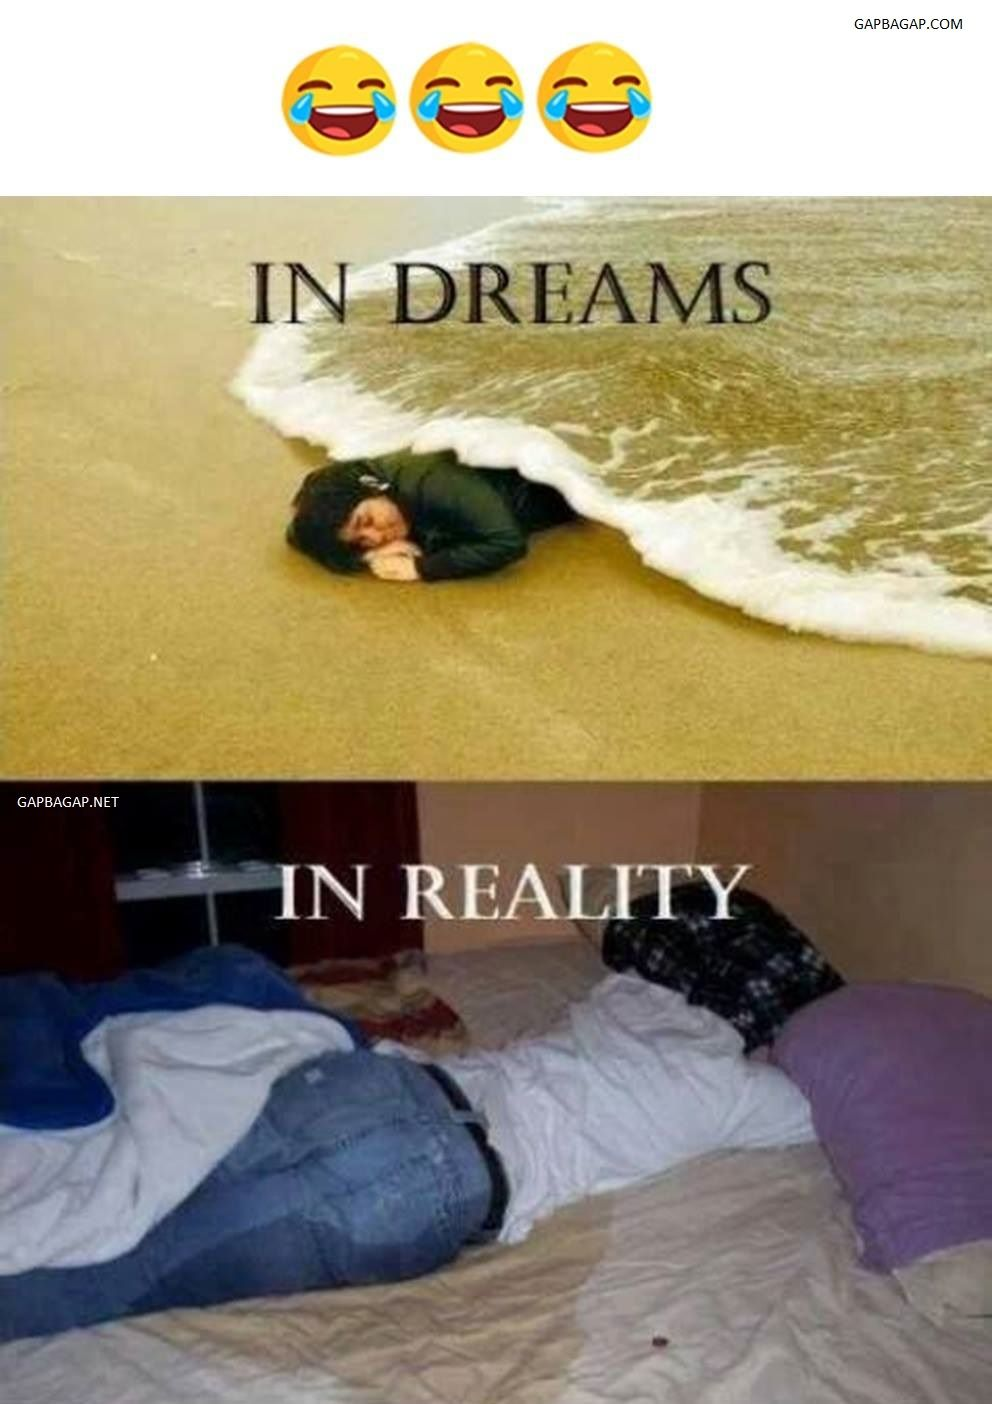 Funny Meme About Dreams Vs Reality Funny Memes Pinterest Humor Funny Pictures